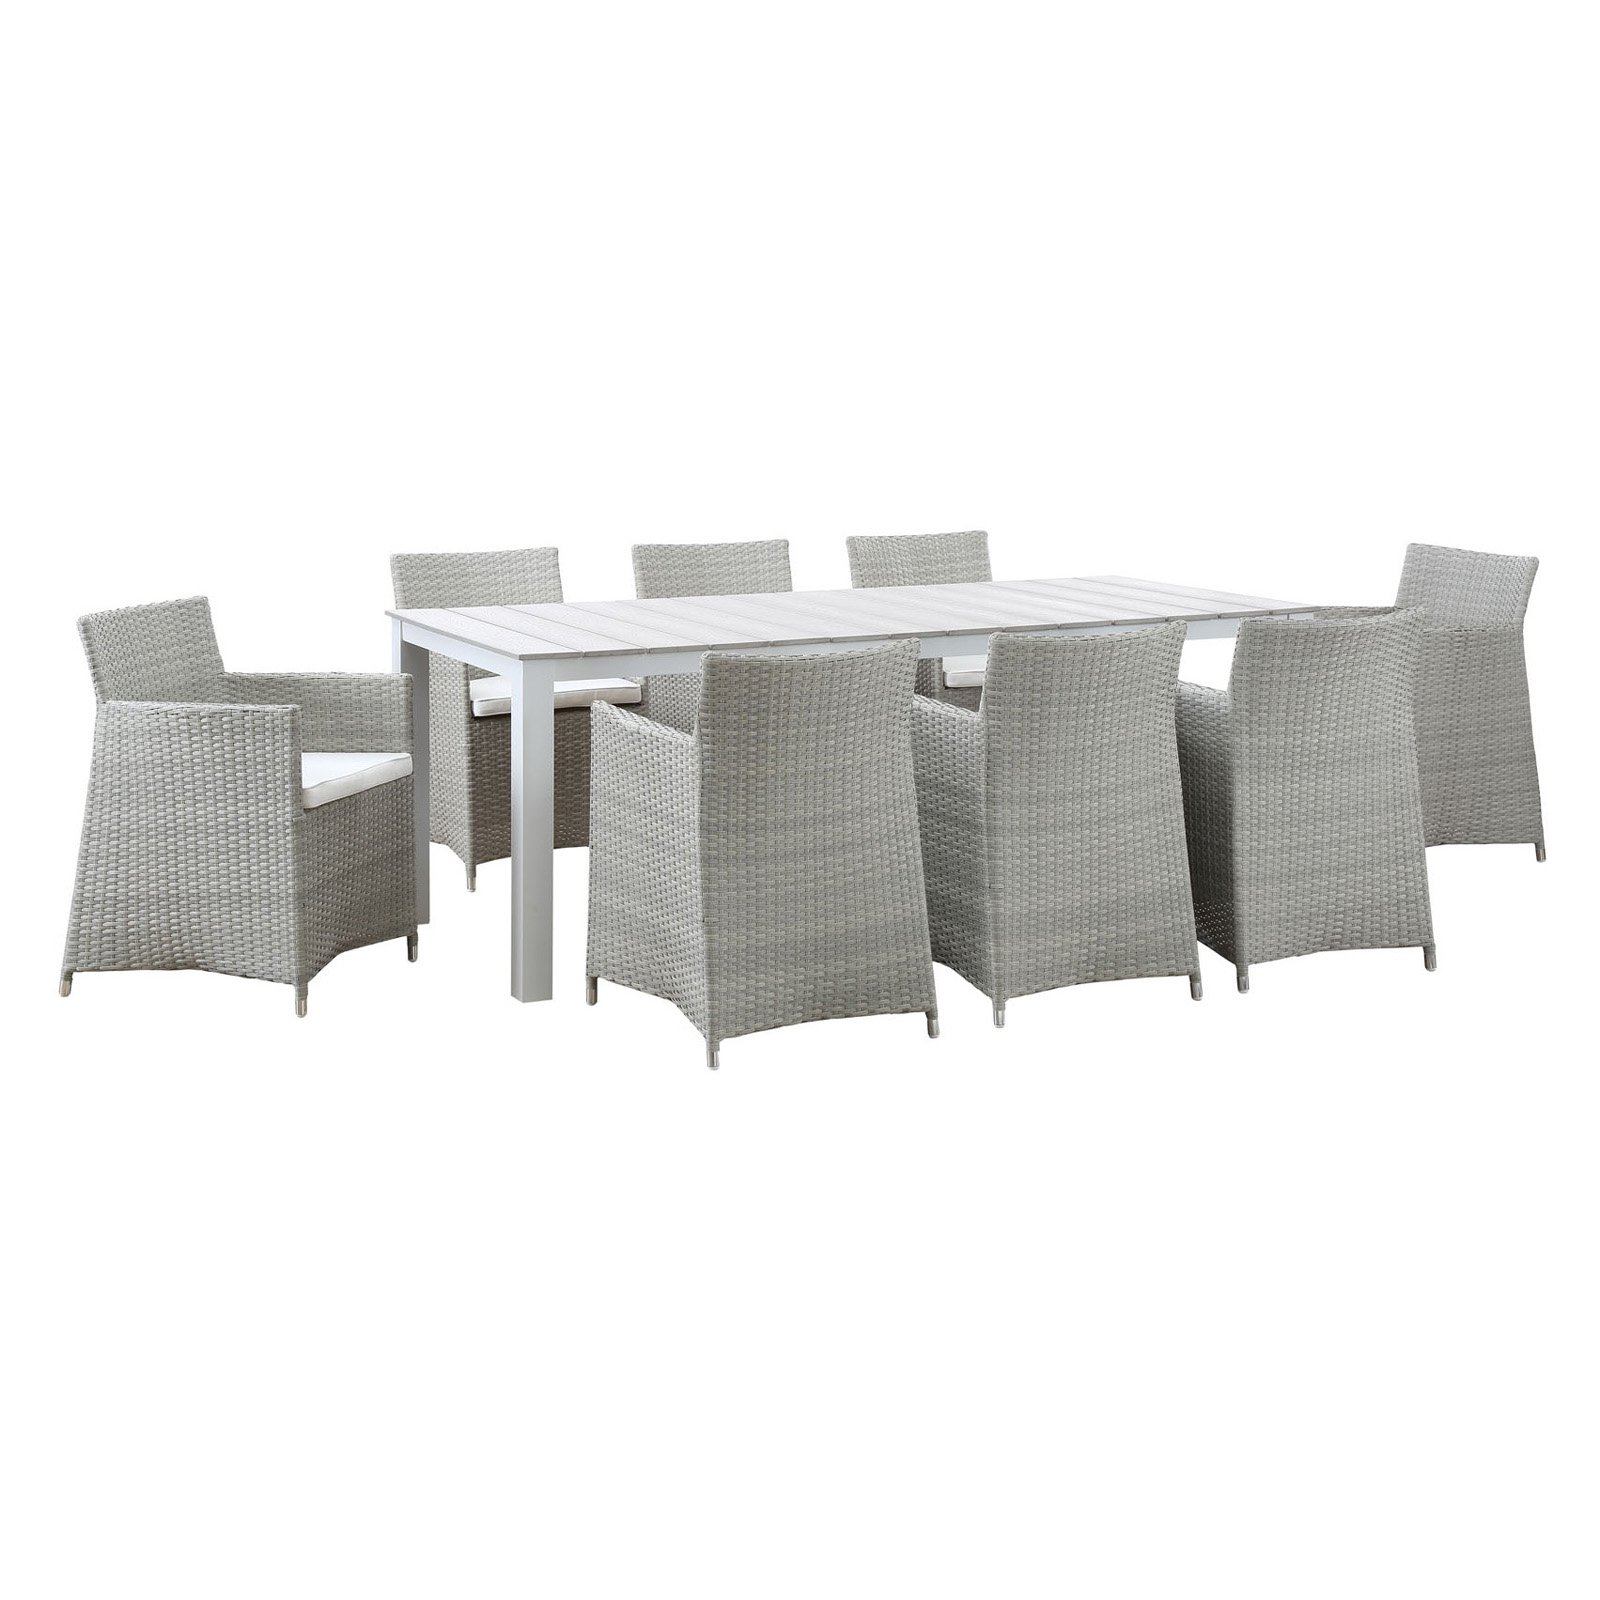 Modway Junction 9 Piece Outdoor Patio Dining Room Set, Multiple Colors by Modway